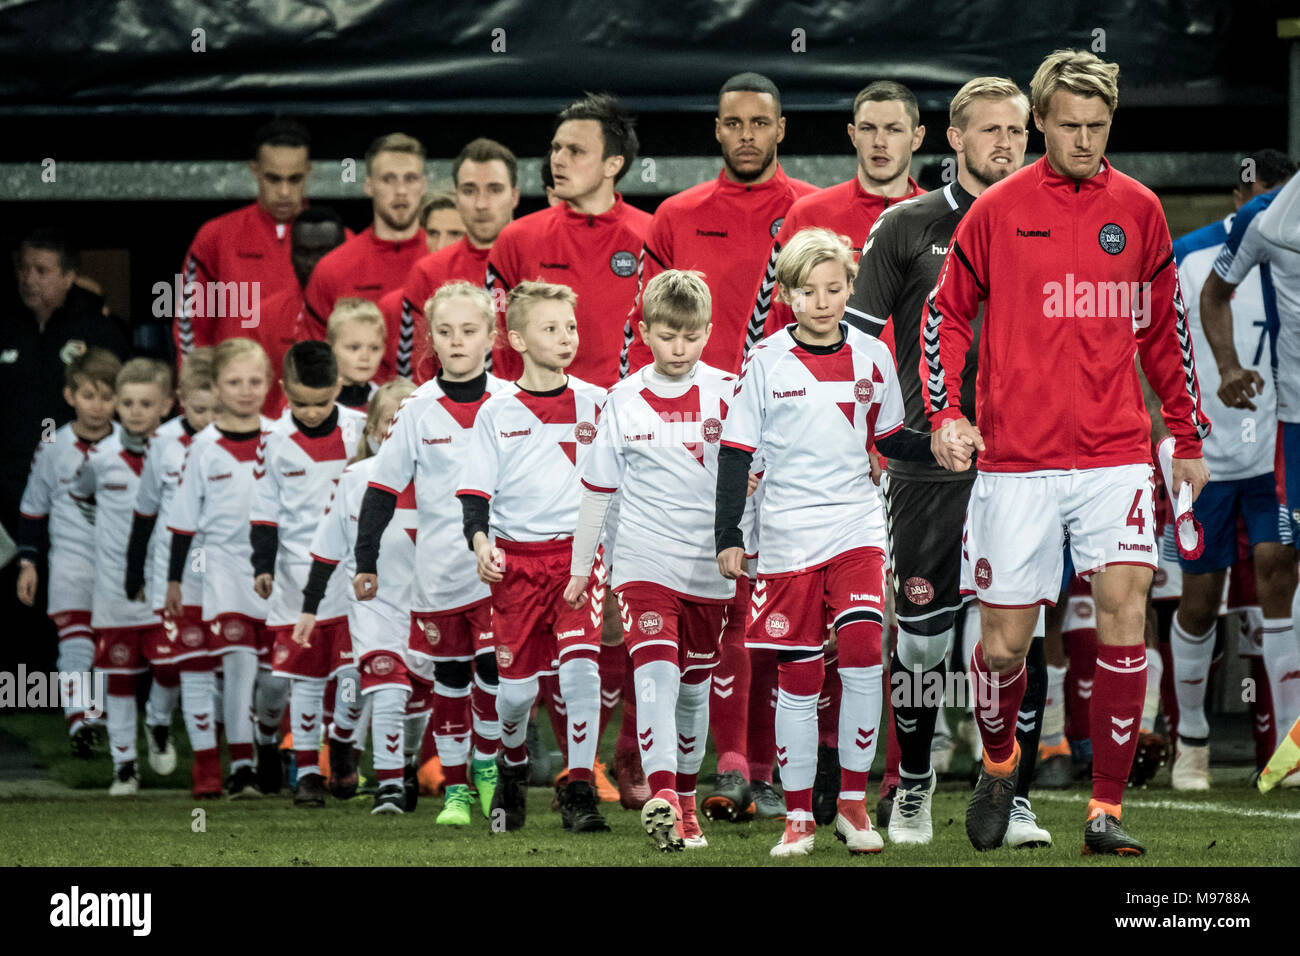 new style 0e28e 422ba Denmark, Brøndby - March 22, 2018. Led by captain Simon Kjær ...